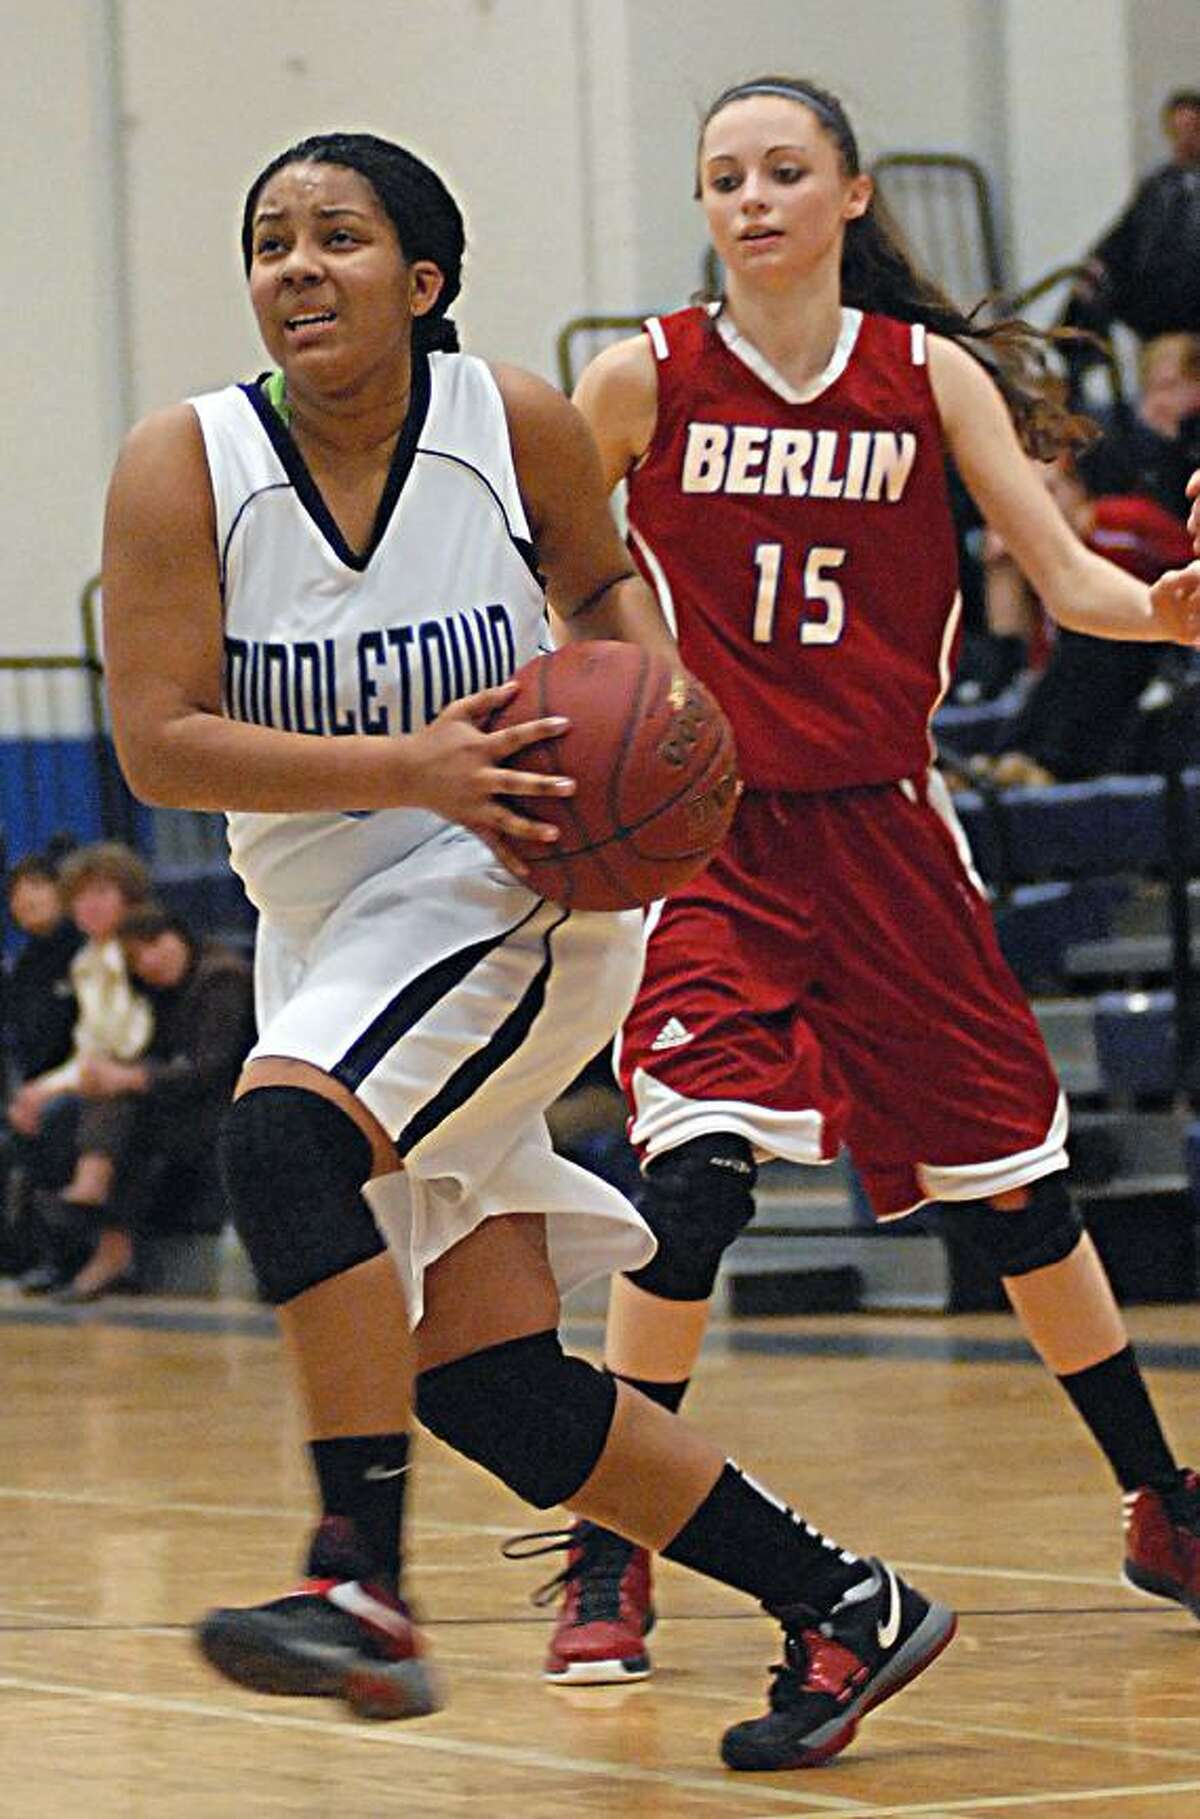 Catherine Avalone/The Middletown PressMiddletown junior forward Tamyia King drives to the hoop as Berlin guard Alicia Maule in Thursday night's game at the Labella-Sullivan Gymnasium in Middletown. The Redcoats defeated the Blue Dragons 57-51.